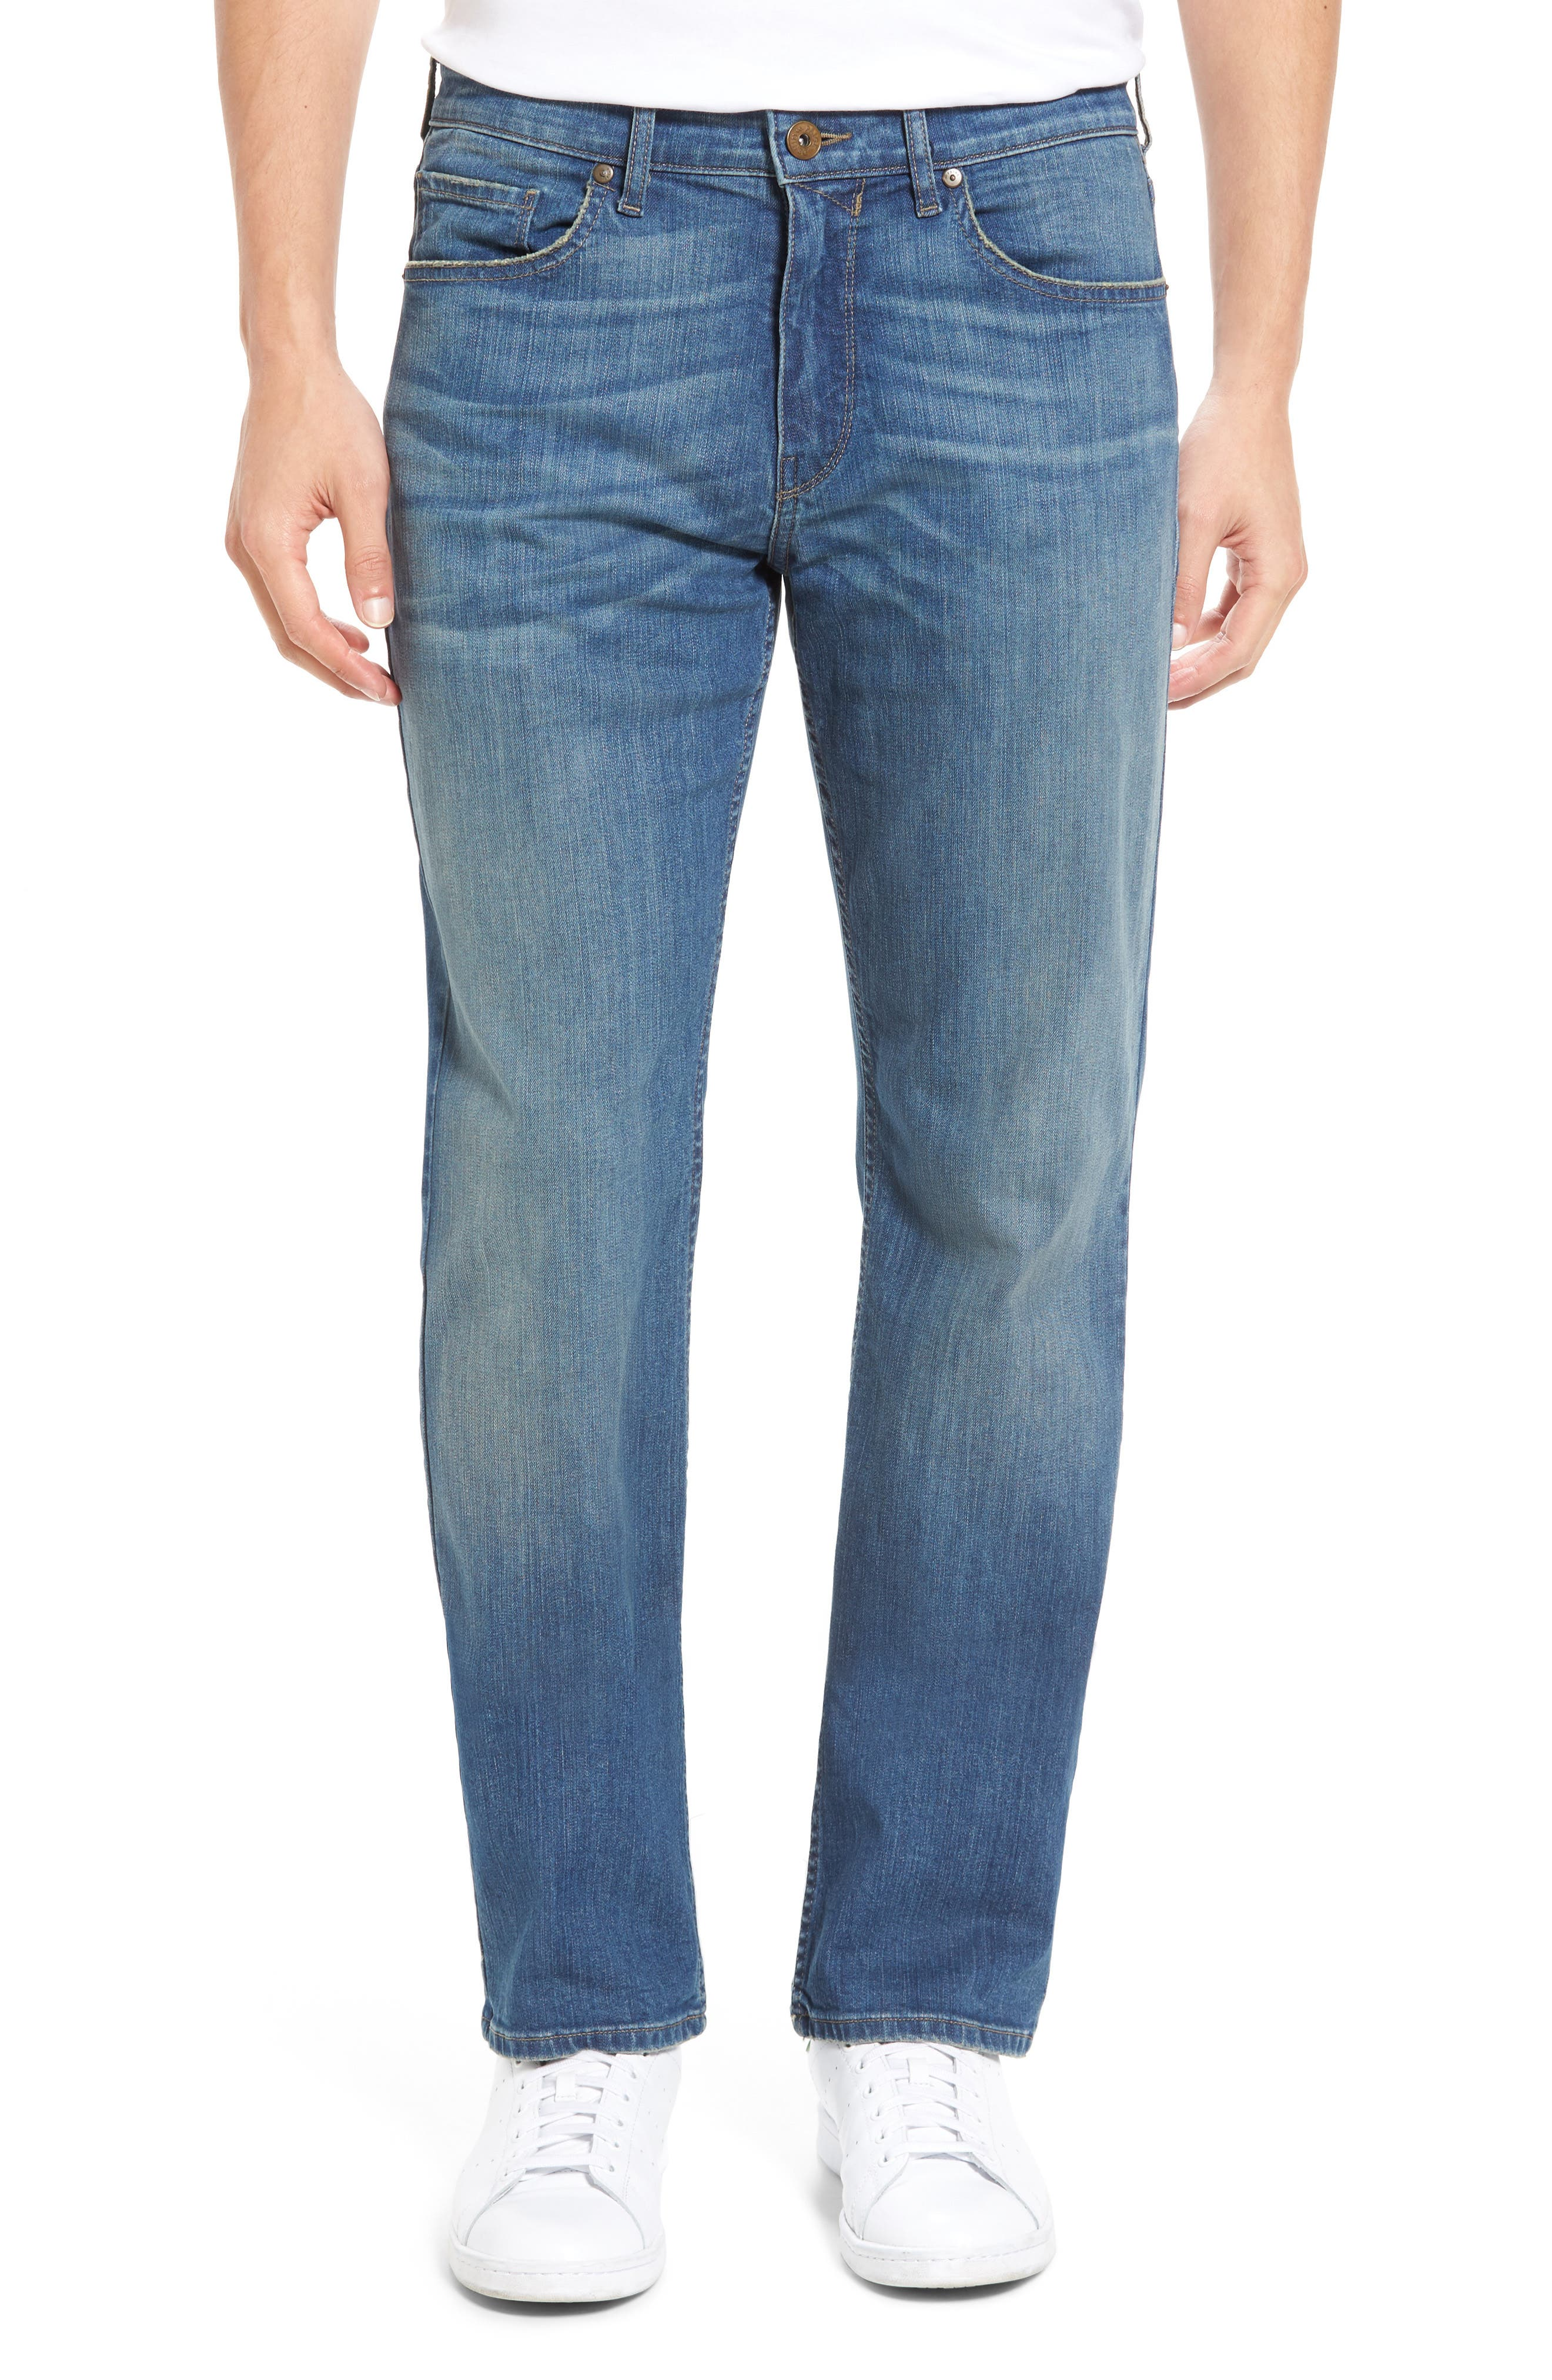 PAIGE Legacy - Doheny Relaxed Fit Jeans